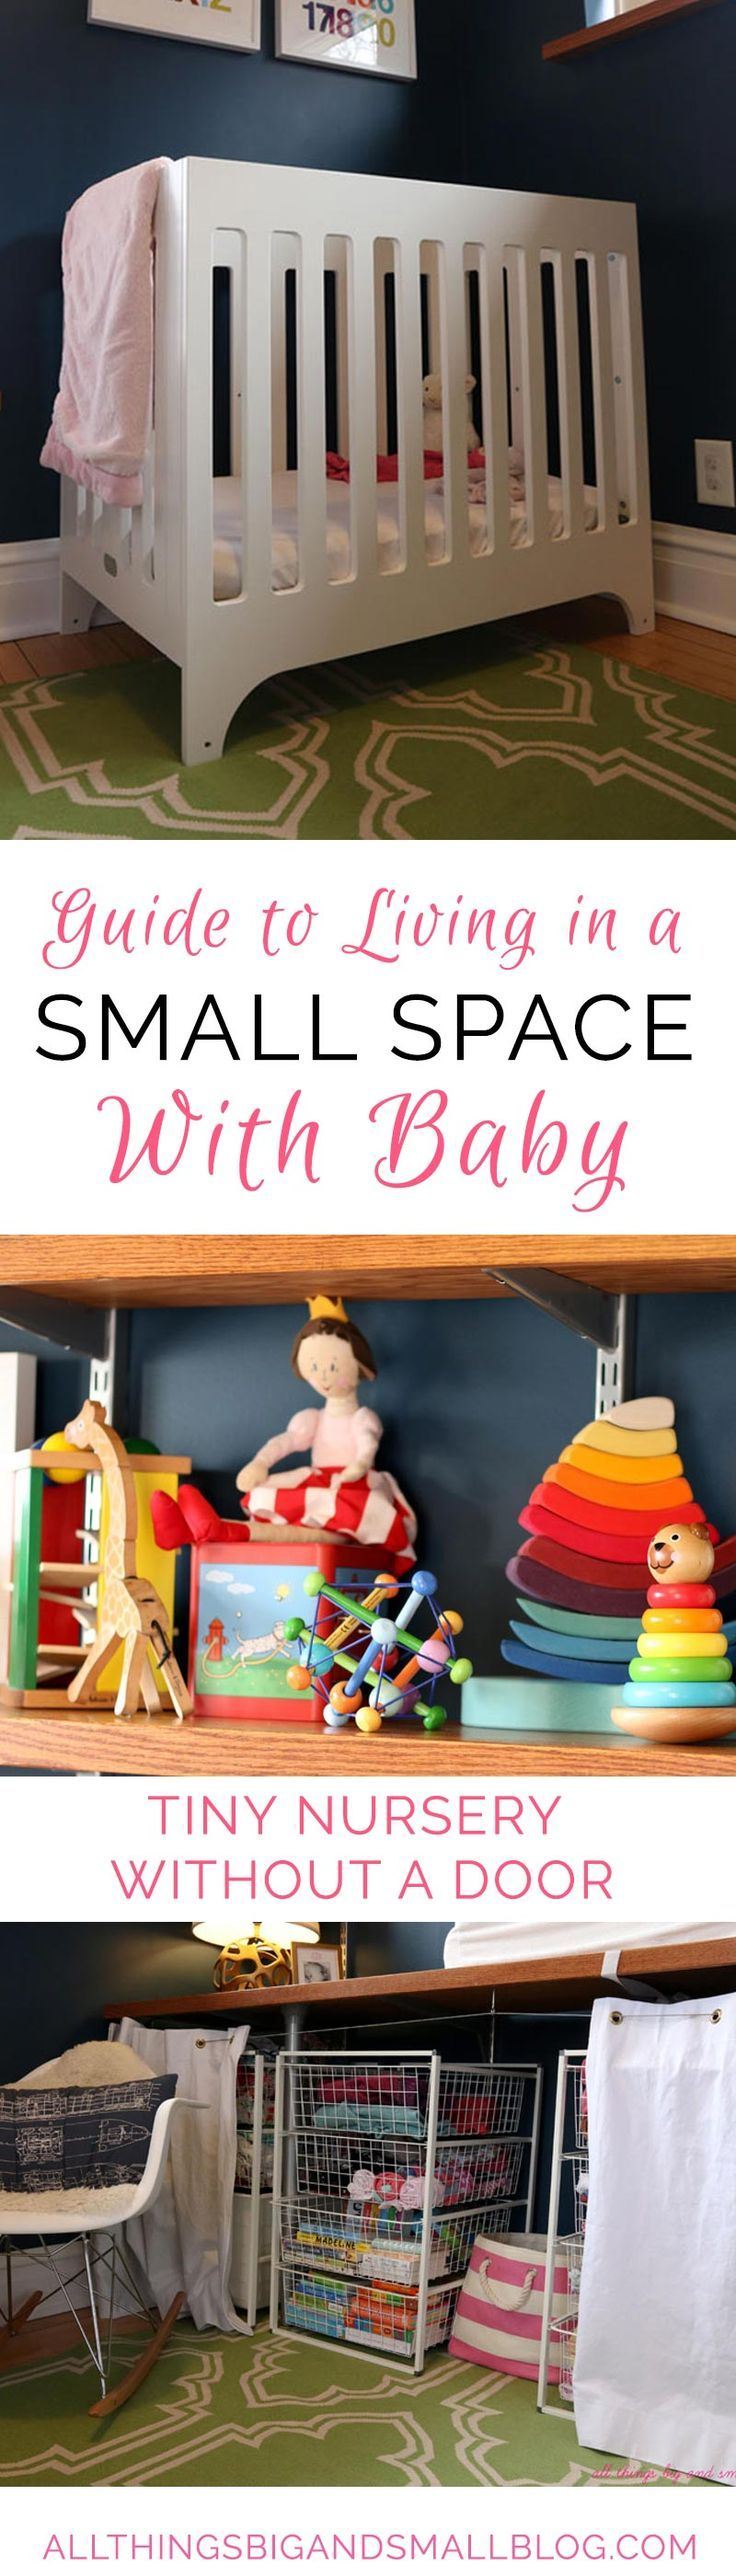 Small Space Living: Raise a Baby in a Small Space | Small space ...